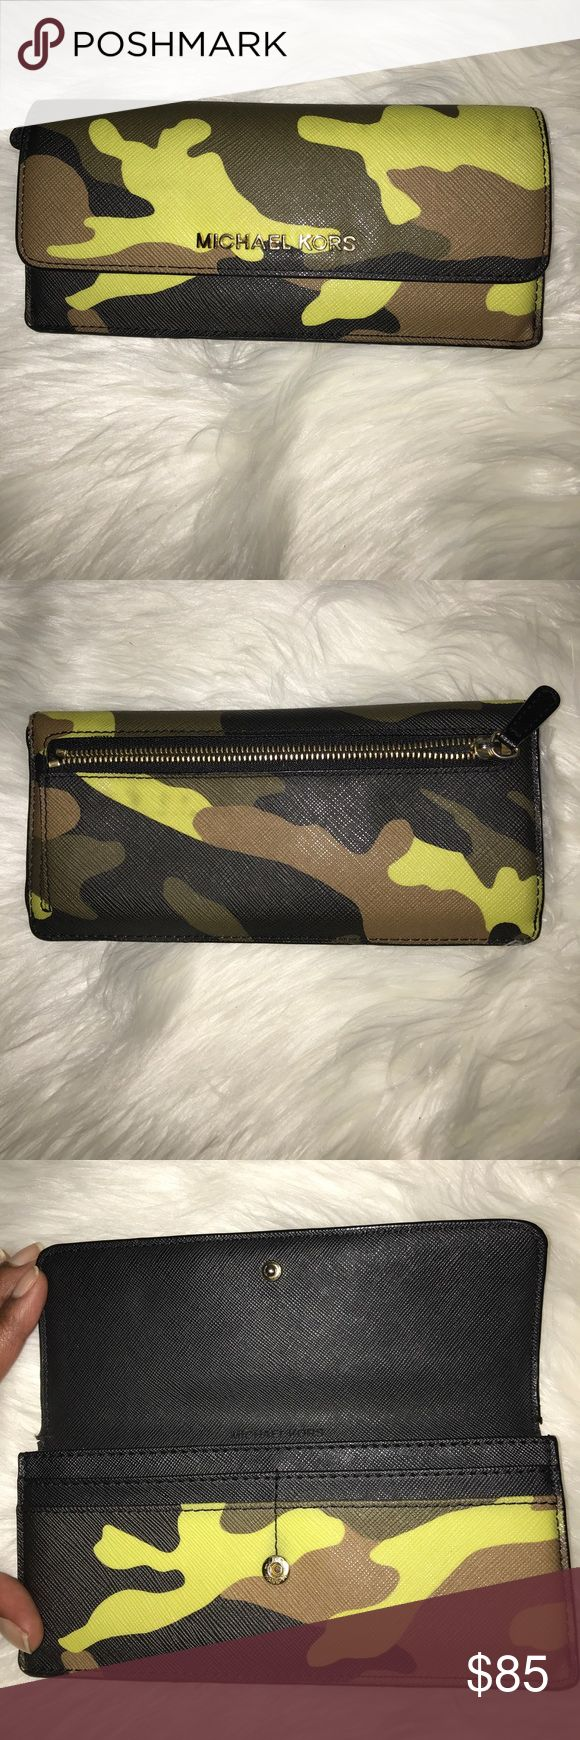 Rare Michael Kors camo wallet Rare Camo Michael Kors wallet with gold zipper hardware on the back,, lots slots to put you cards in. KORS Michael Kors Bags Wallets